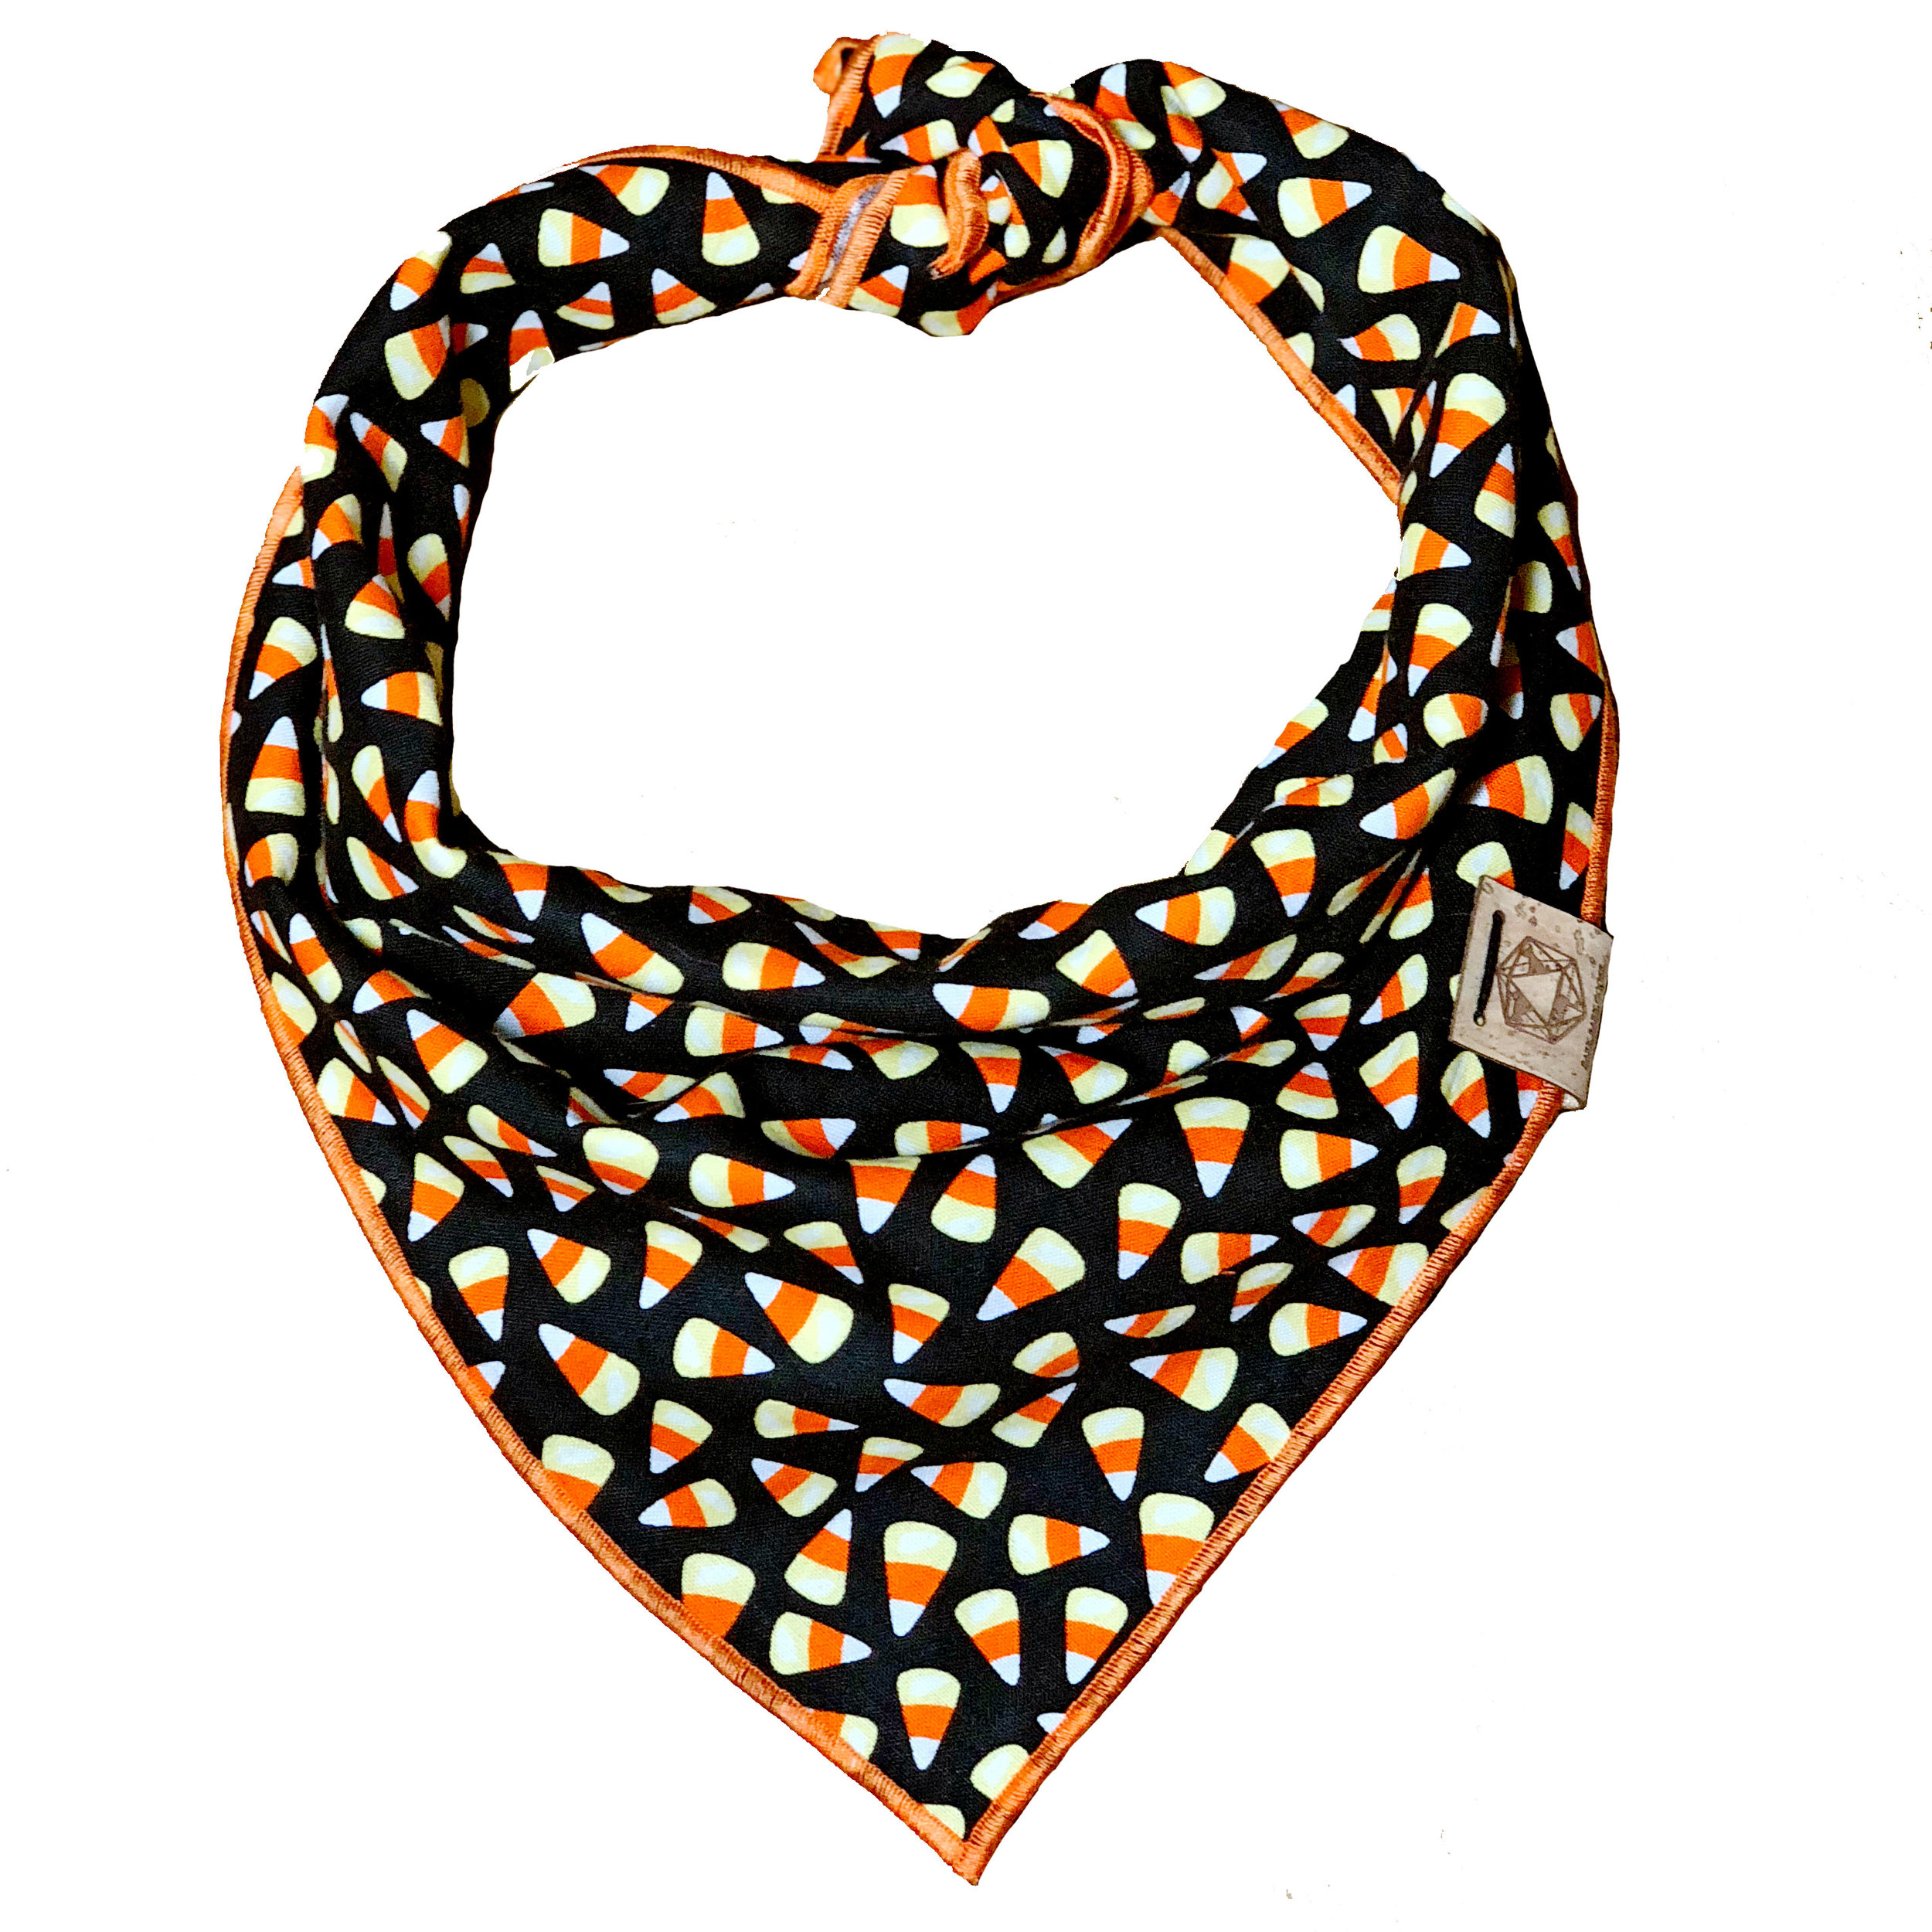 candy-corn-print-dog-bandana-for-halloween-final.jpg